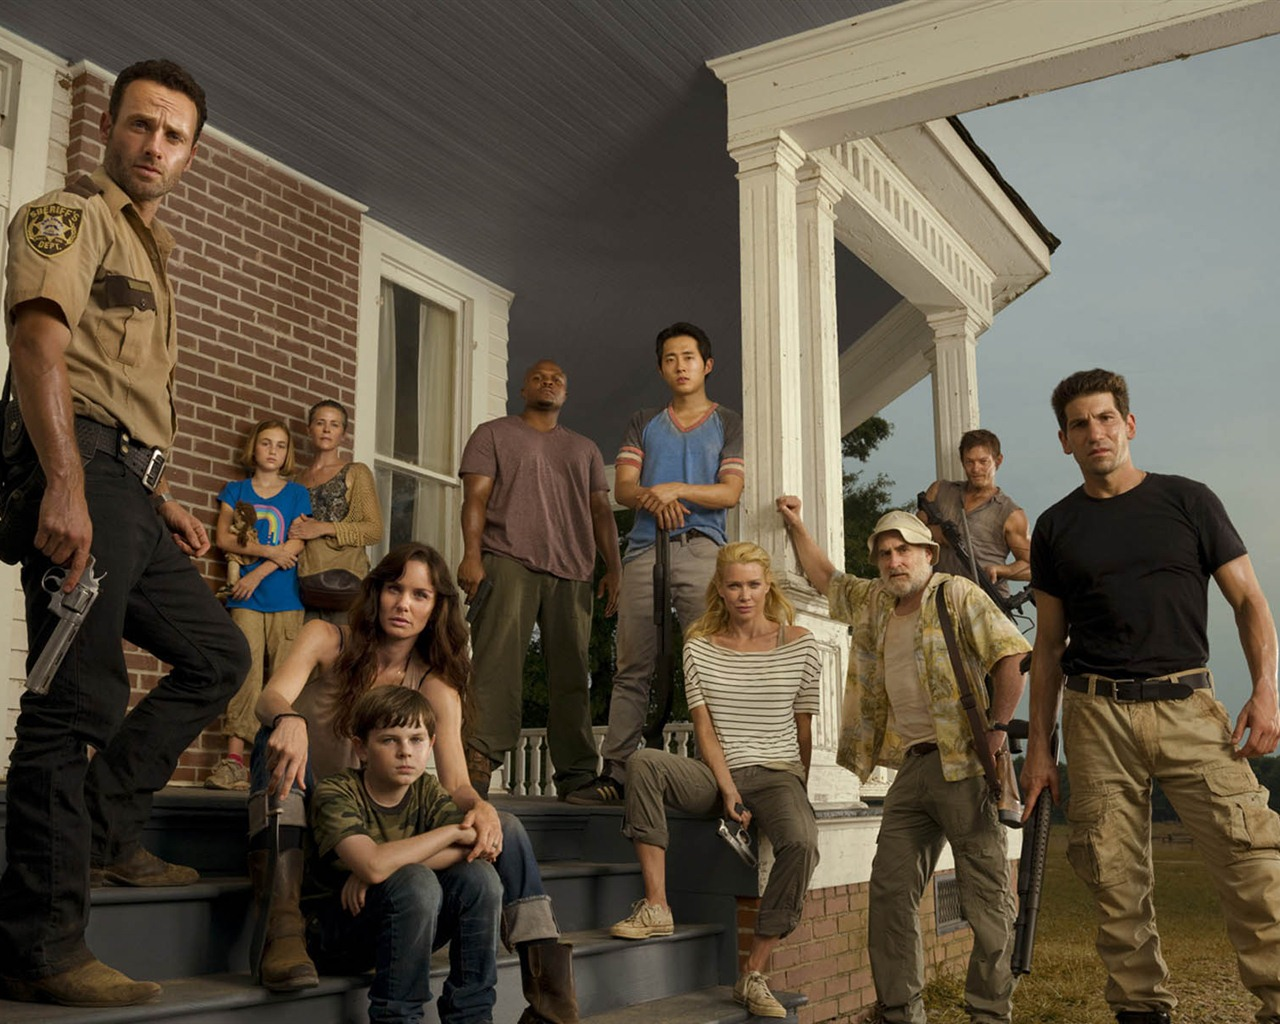 1280x1024 the walking dead - photo #42